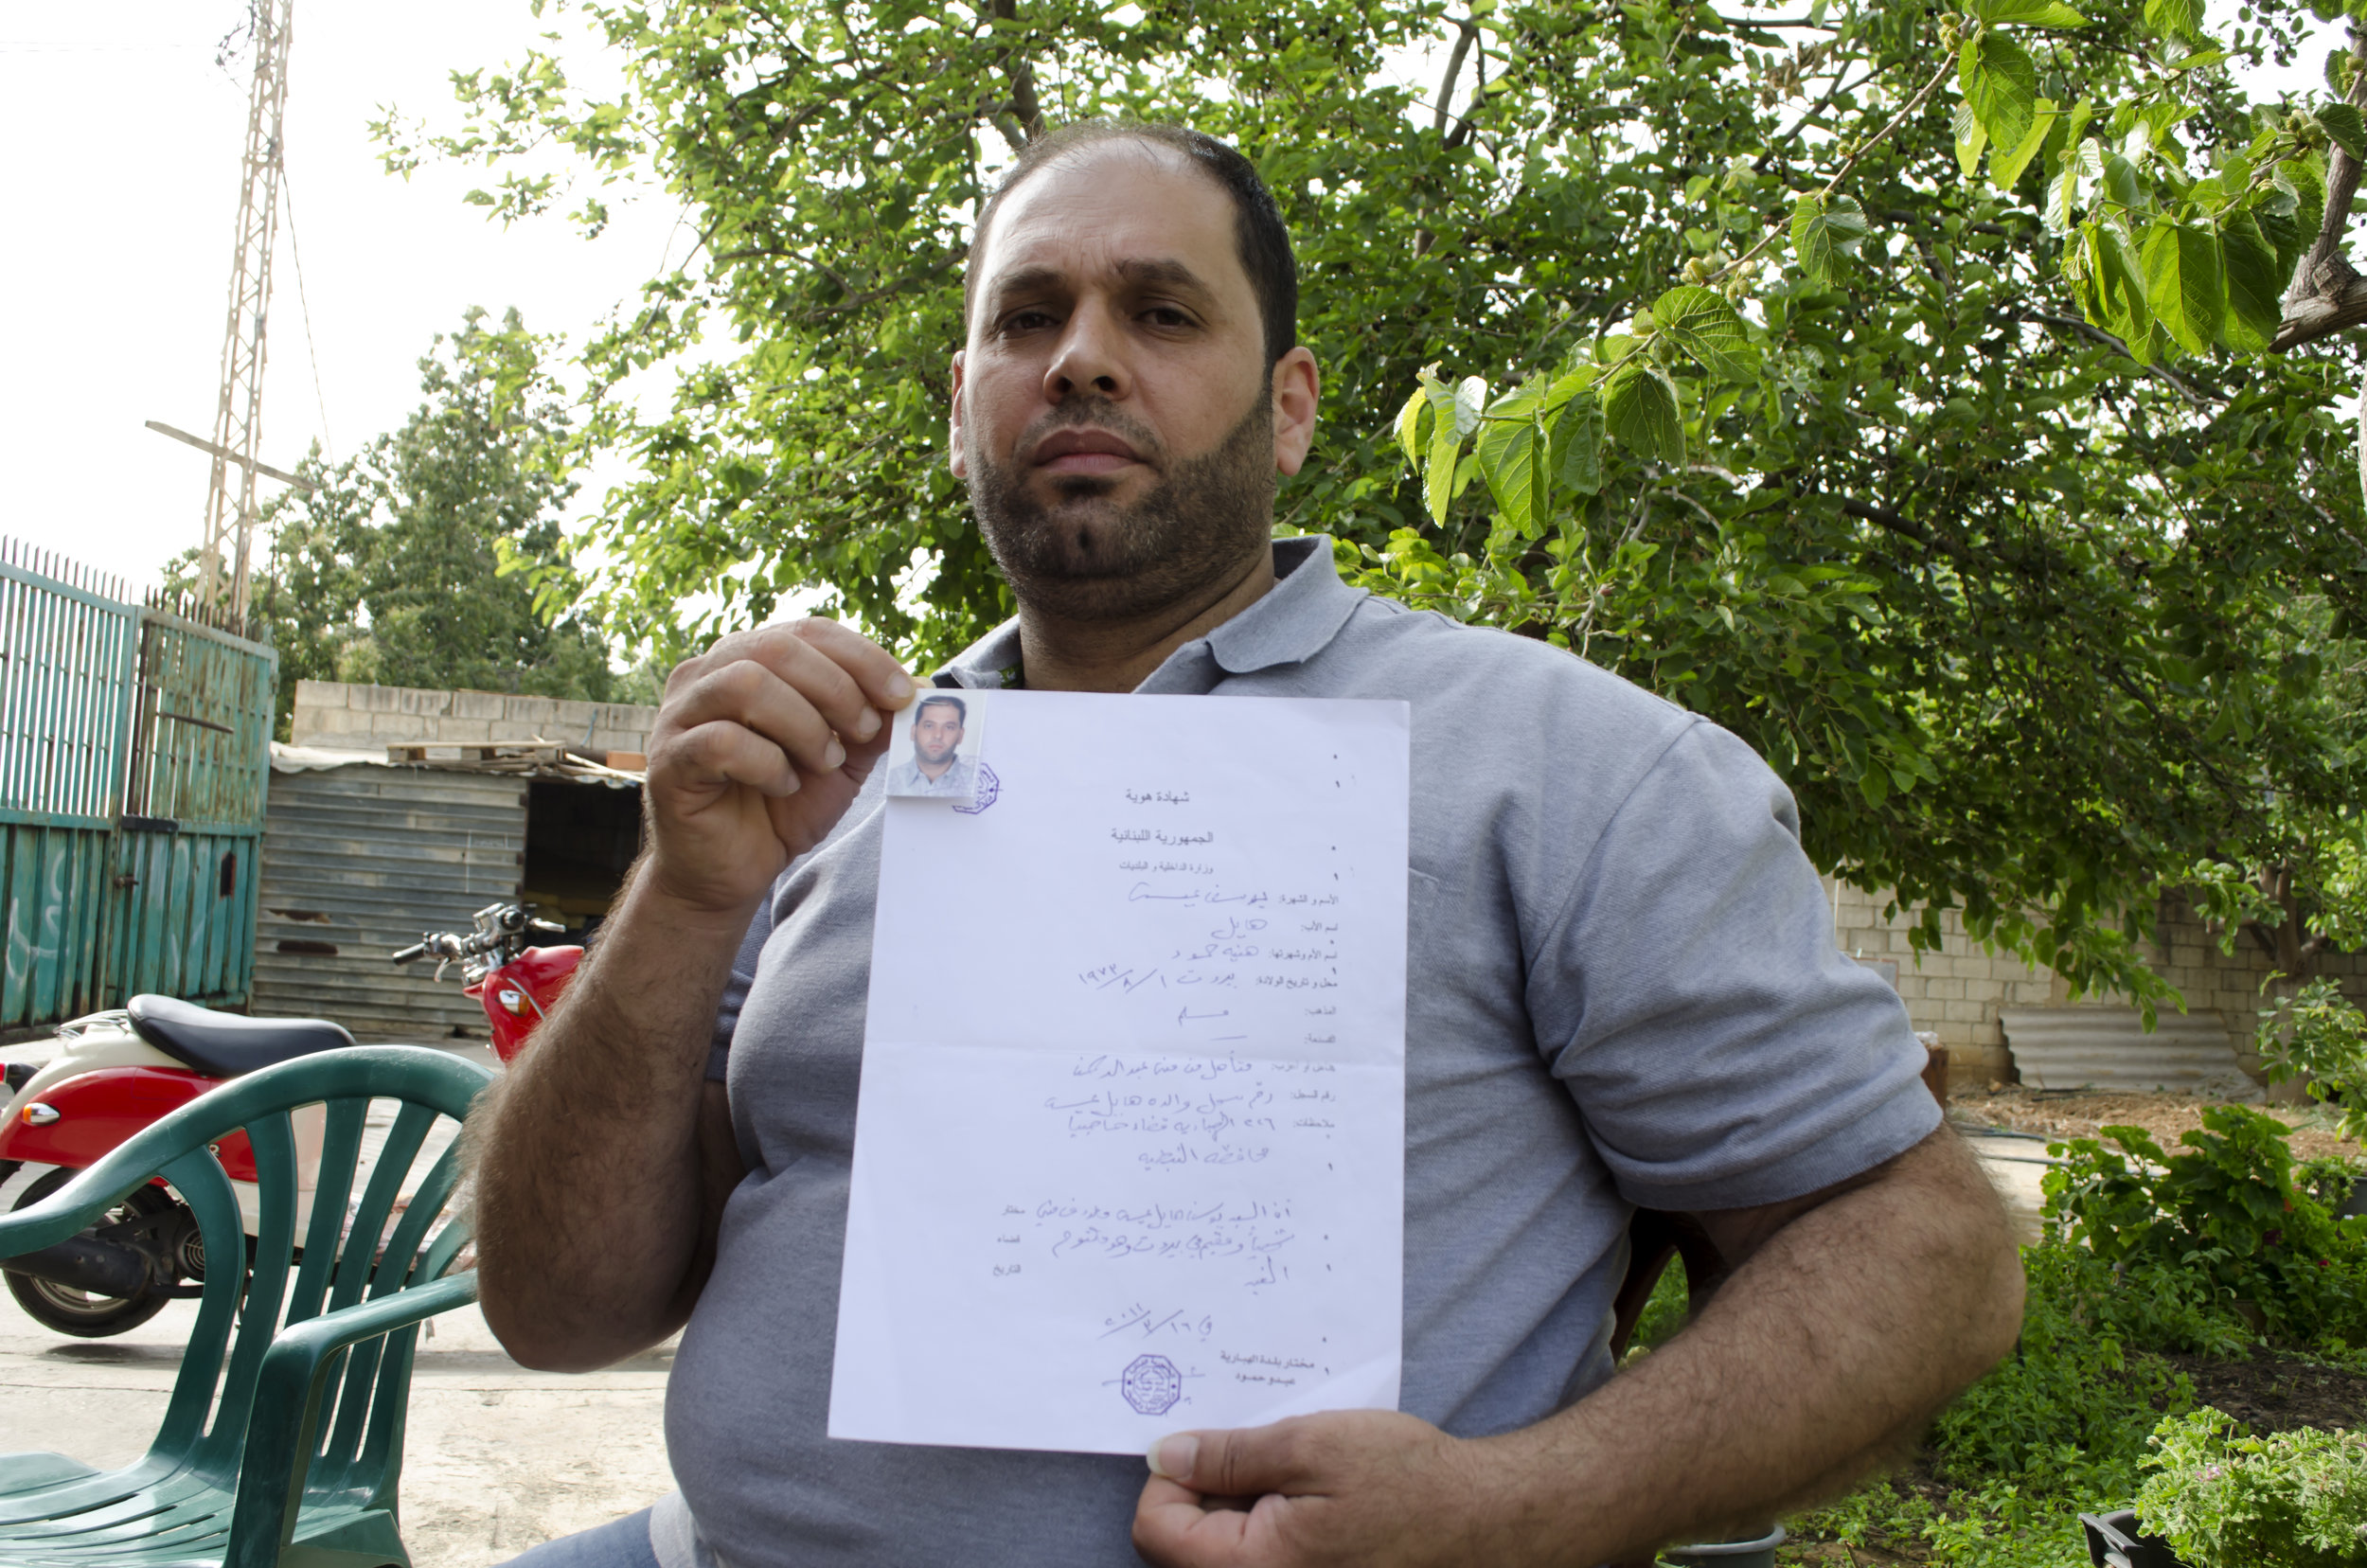 Youssef Issa shows a handwritten document from his village's mukhtar that attests to his identity and place of origin. But it is not proof of nationality in the eyes of the law.  (The Daily Star/Antoine Abou-Diwan)